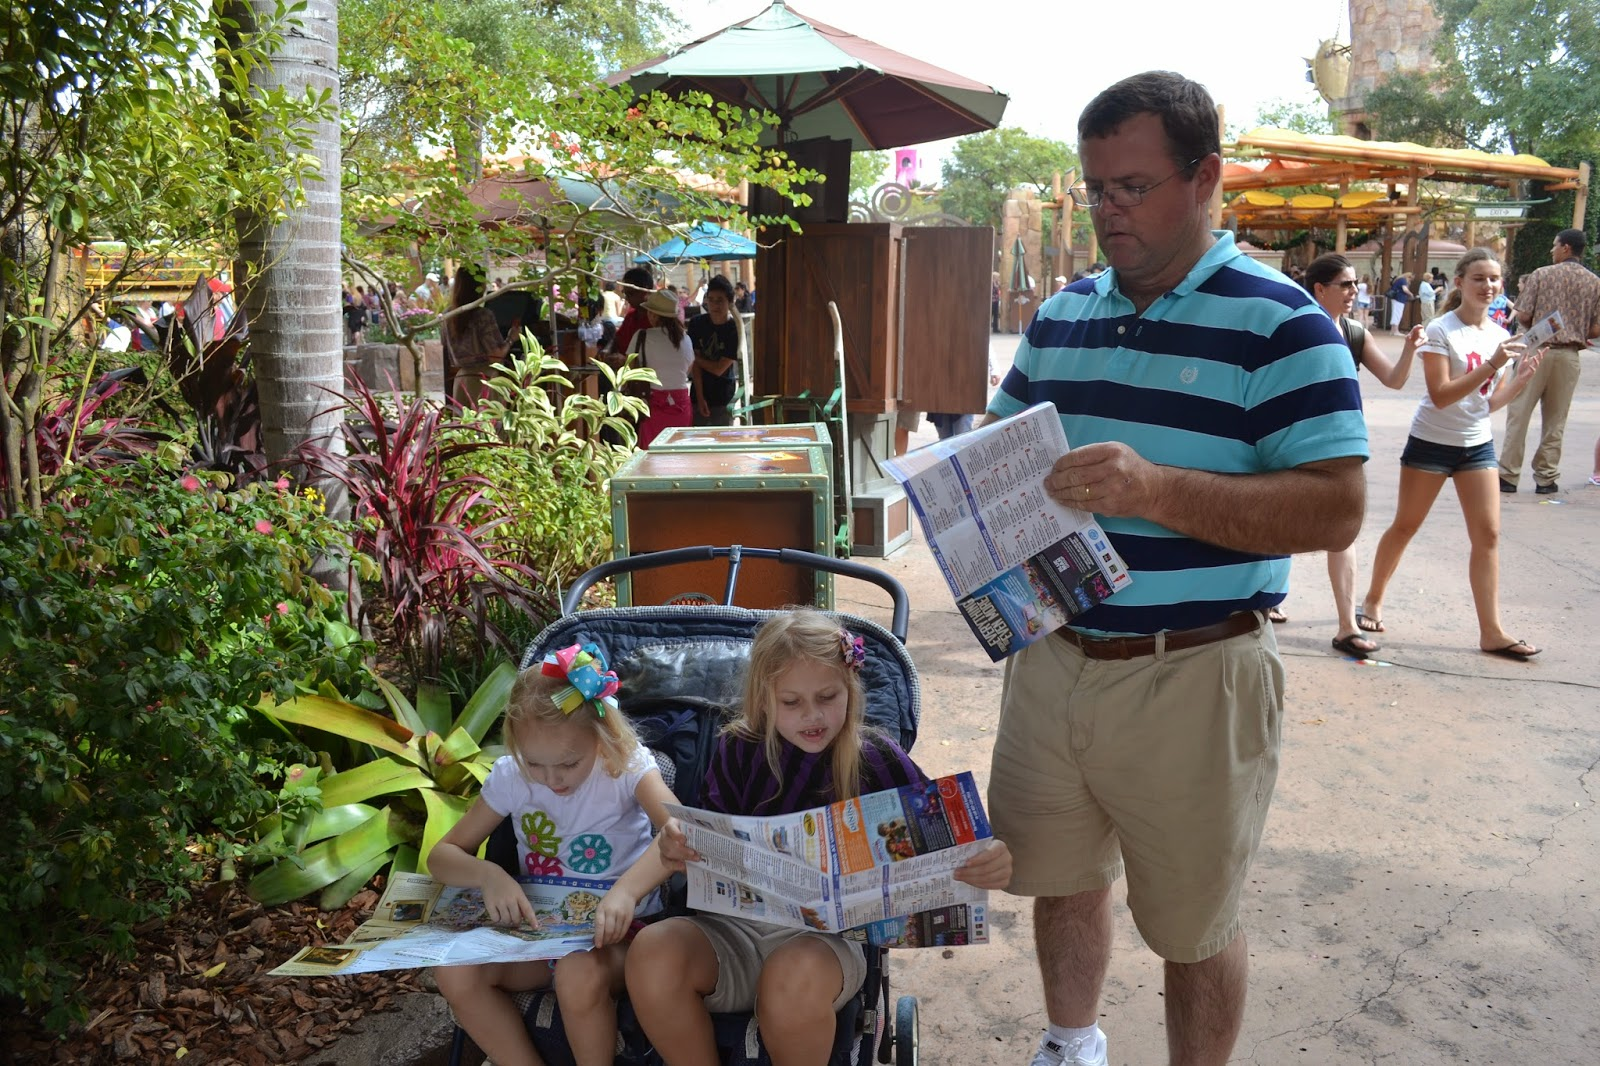 Getting our maps straight at Universal - Islands of Adventure